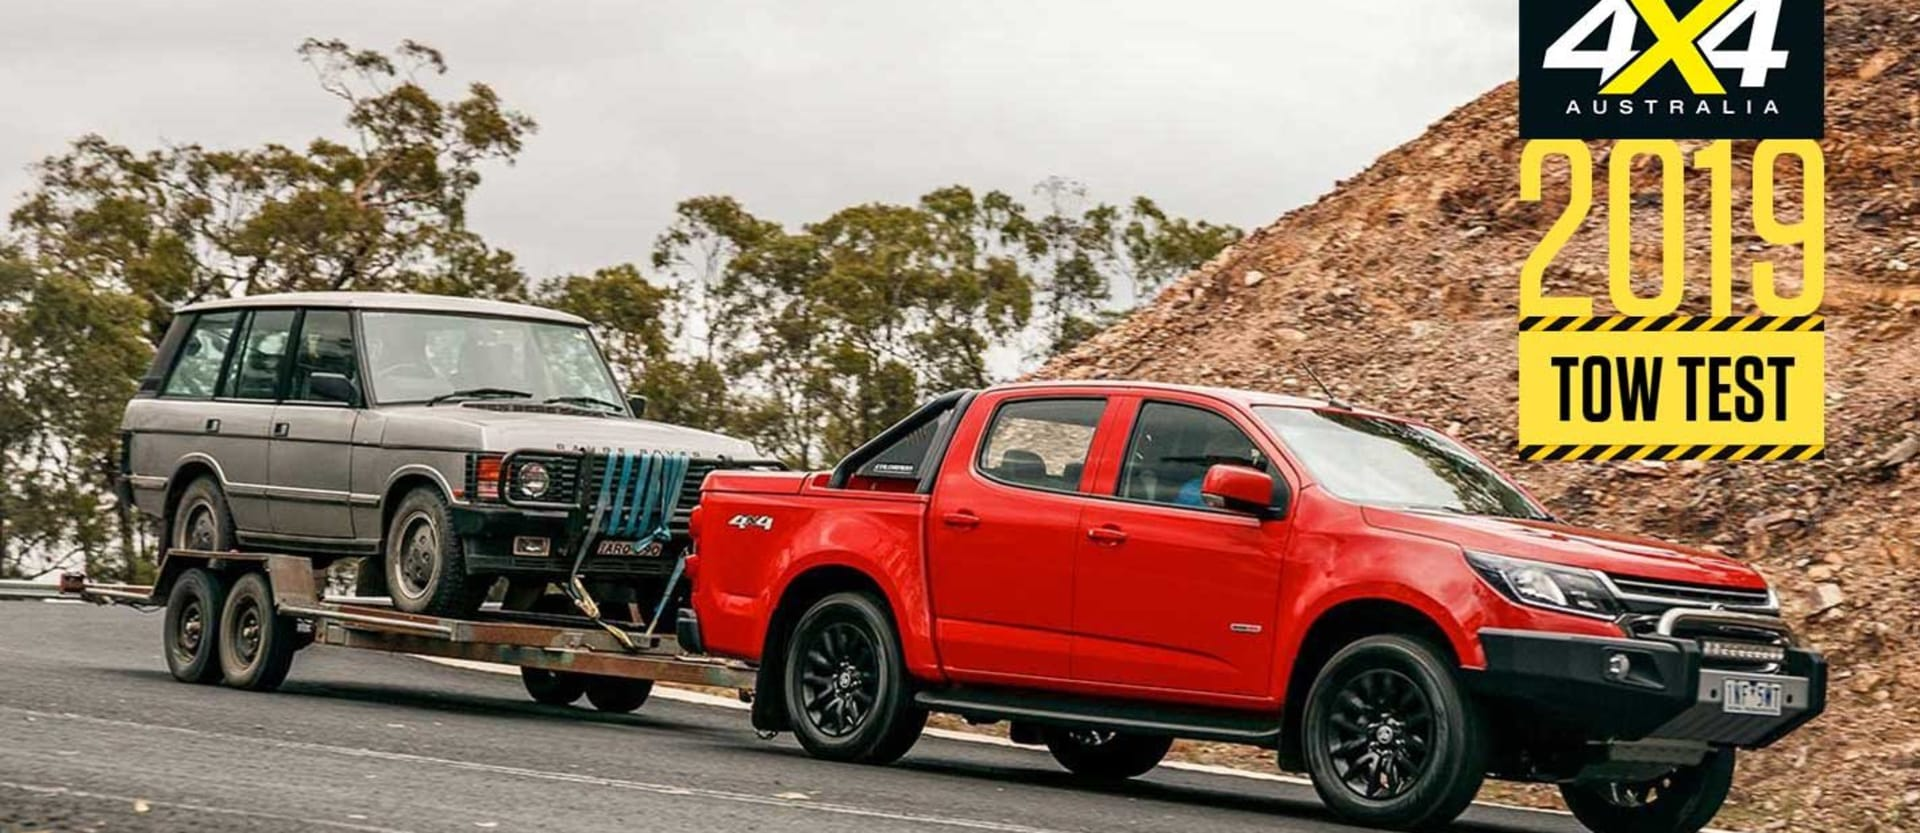 2019 Holden Colorado load and tow test review